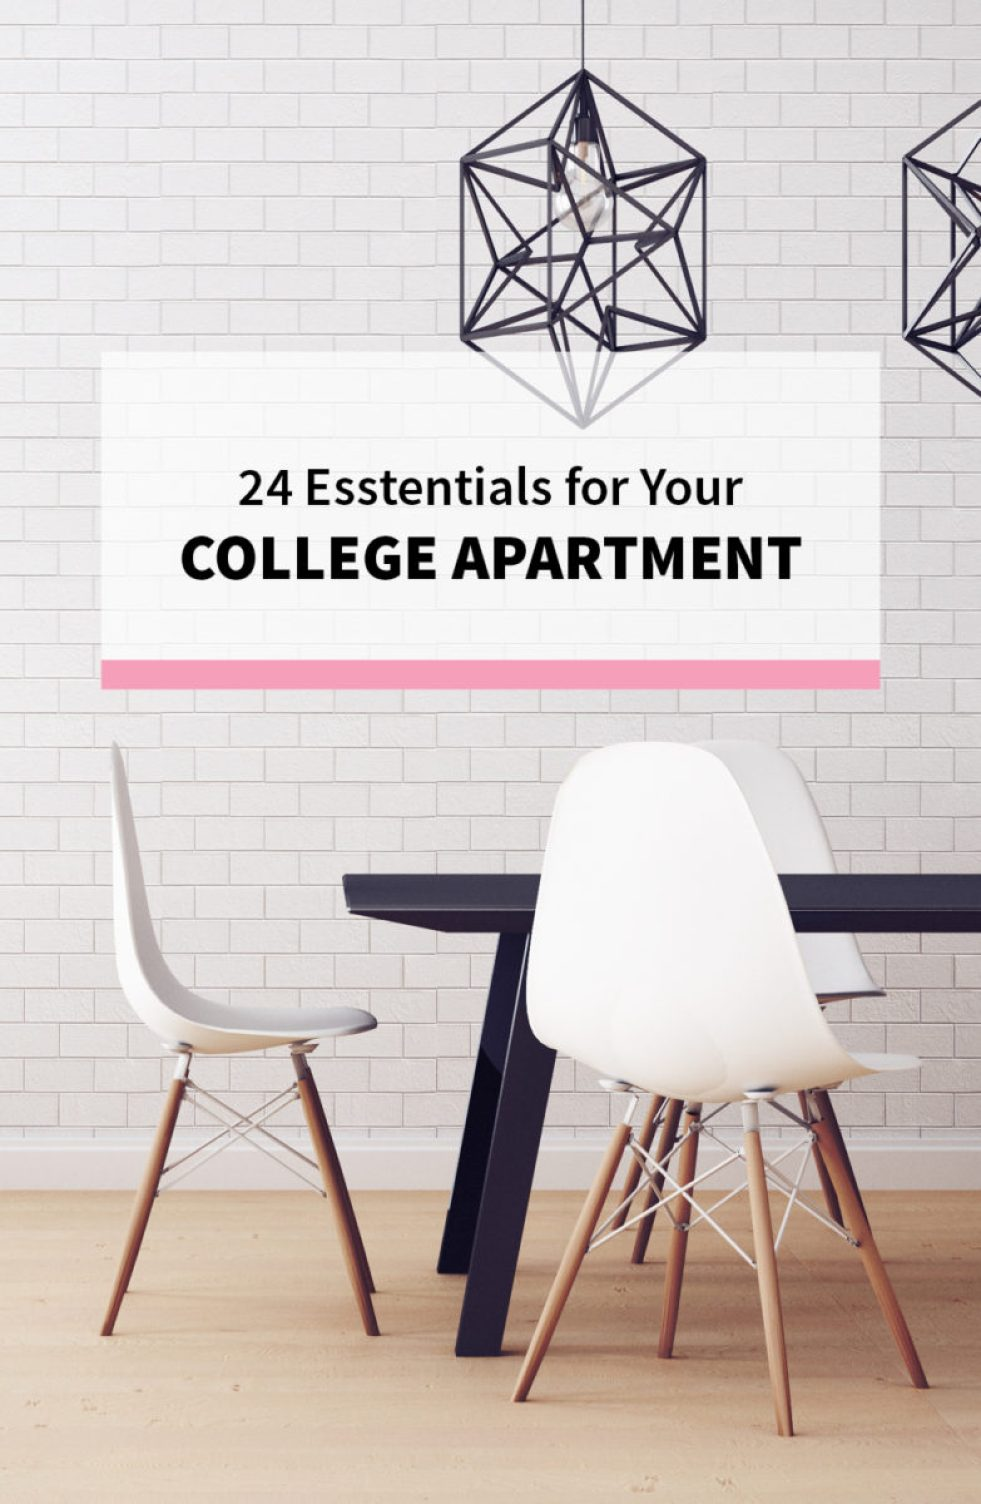 24 Essentials for Your College Apartment - Kitchen, Room & Decor